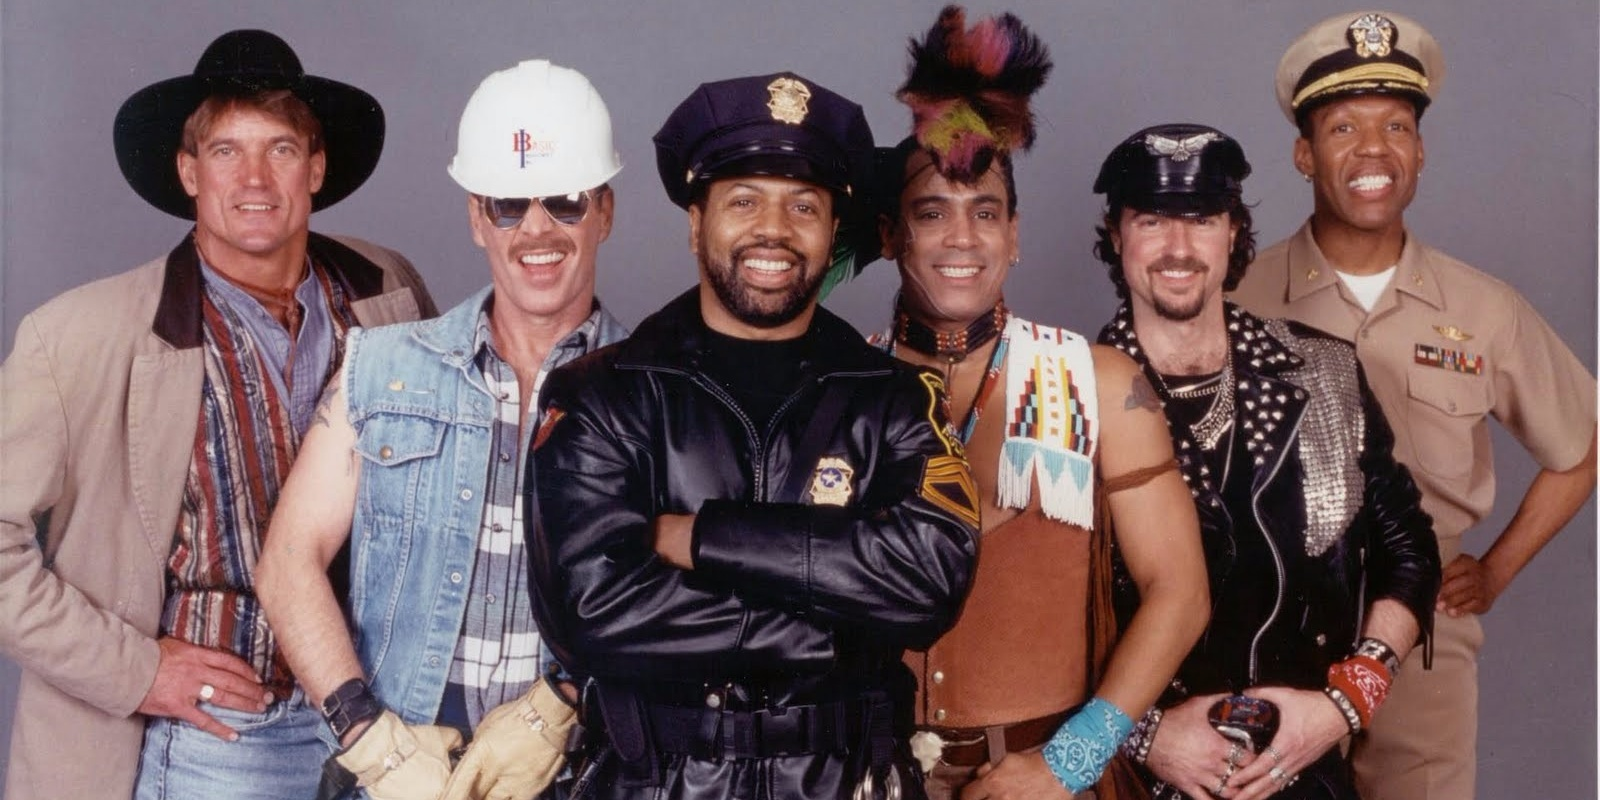 Village People celebrate their 40th Anniversary in Singapore